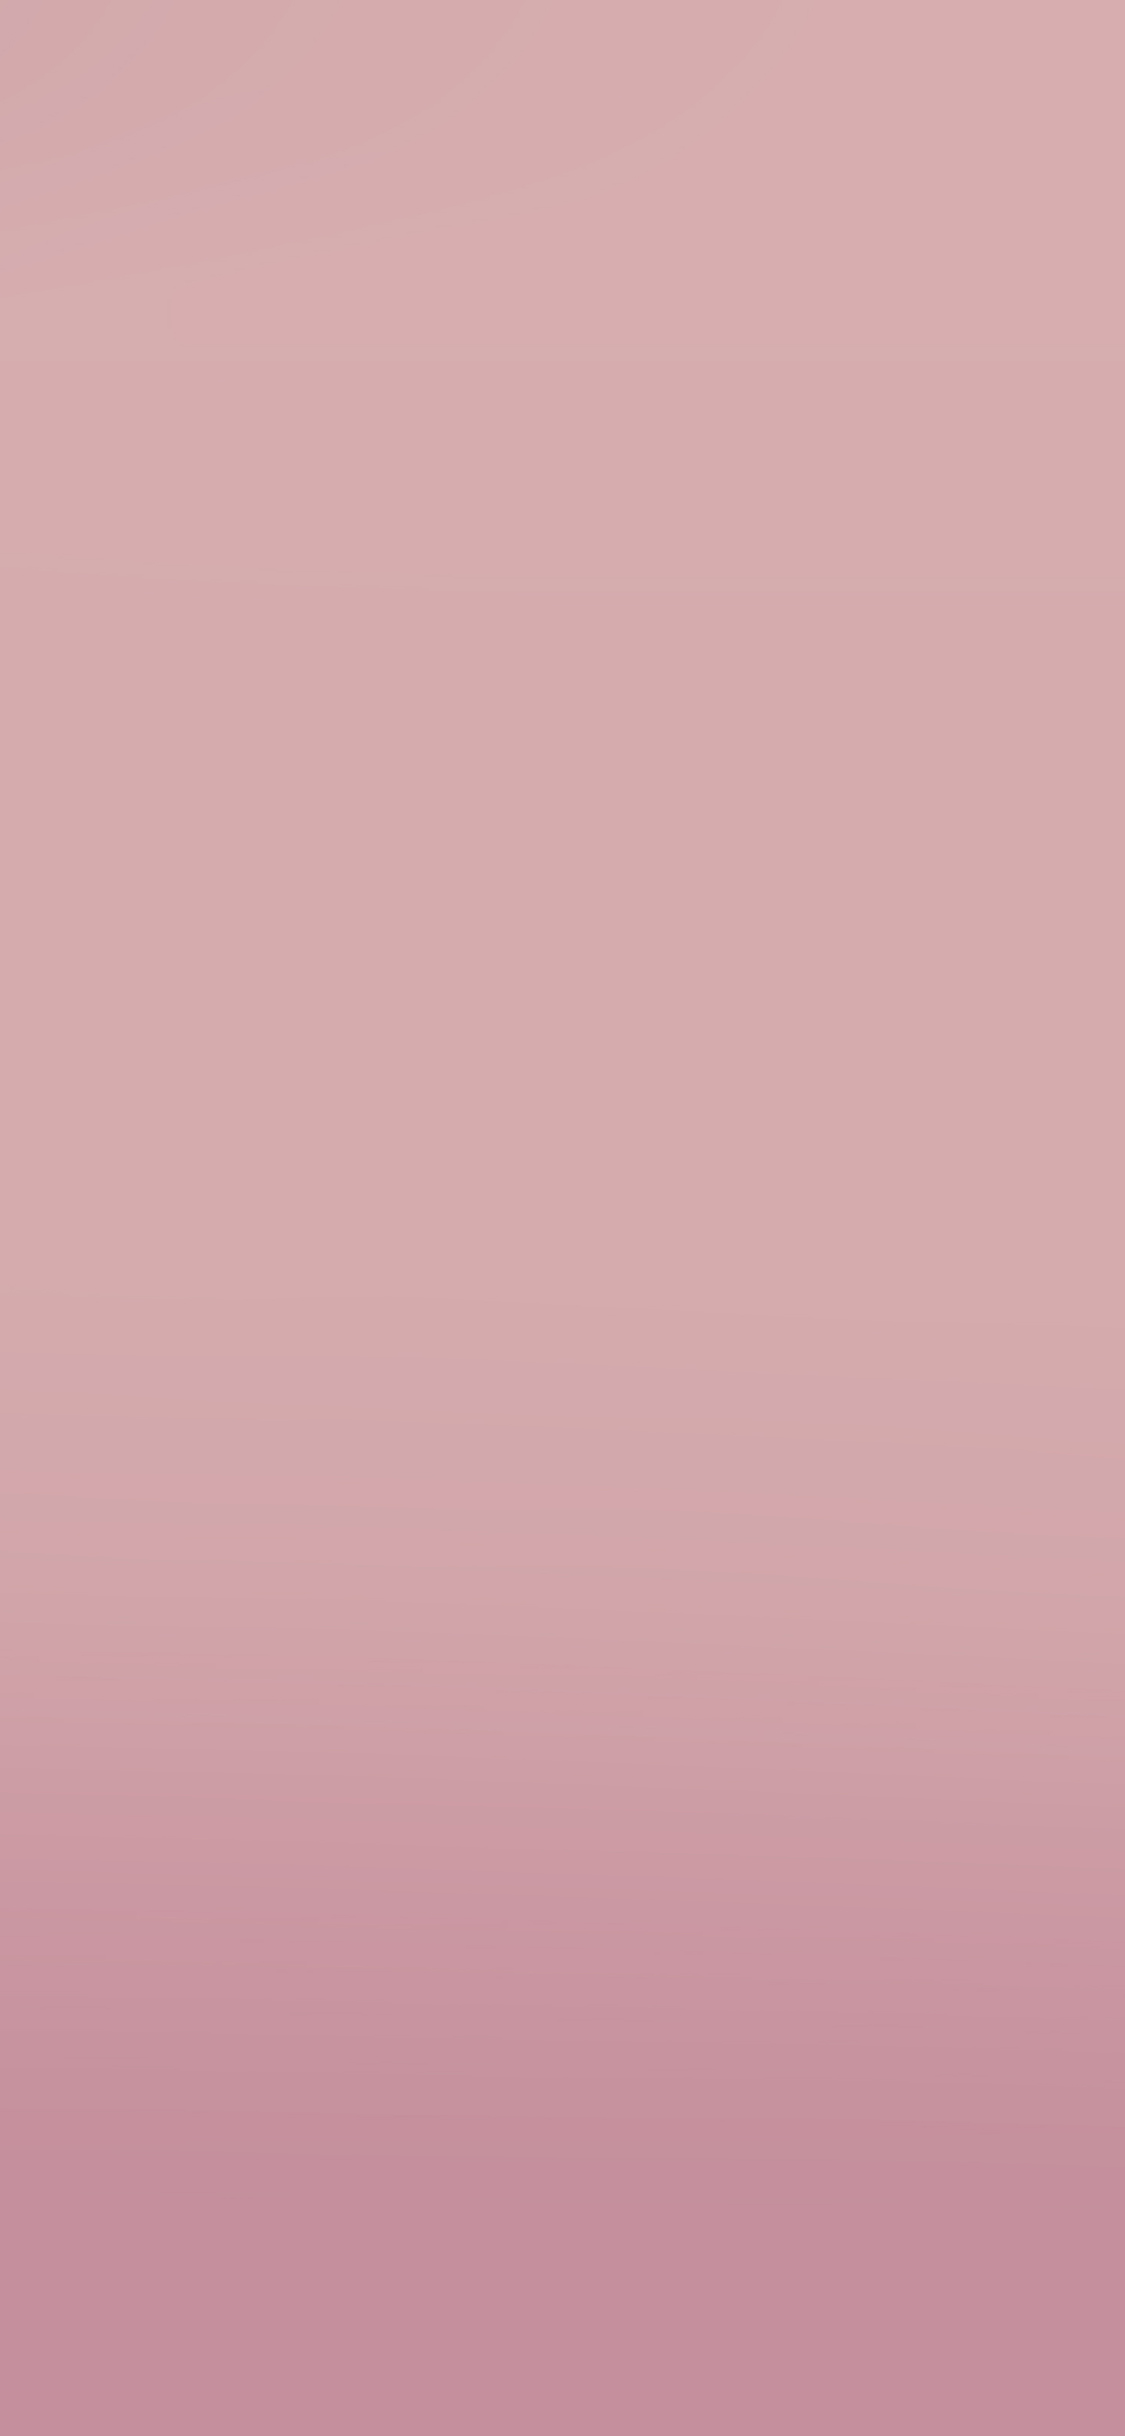 iPhoneXpapers.com-Apple-iPhone-wallpaper-sa30-pinky-classic-night-blur